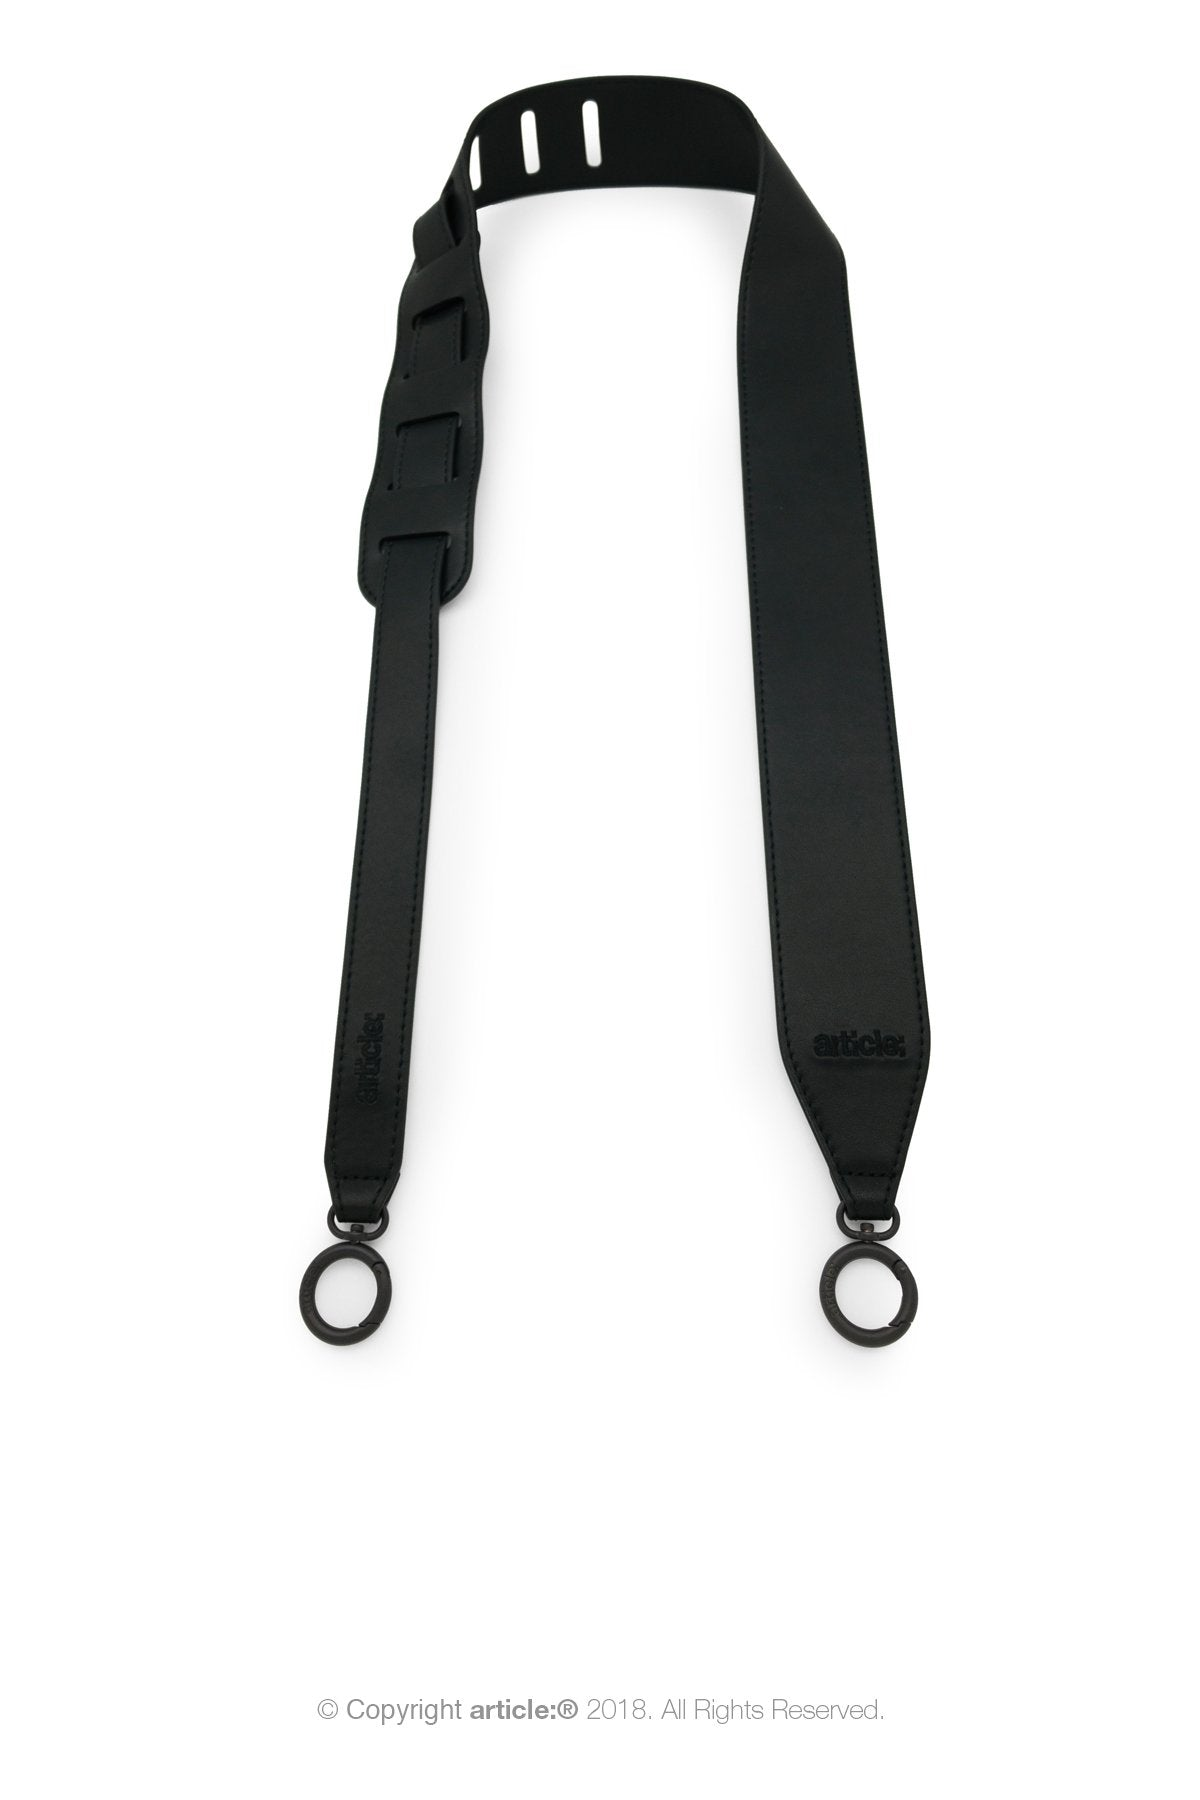 article: #330 Crossbody Strap - Guitar